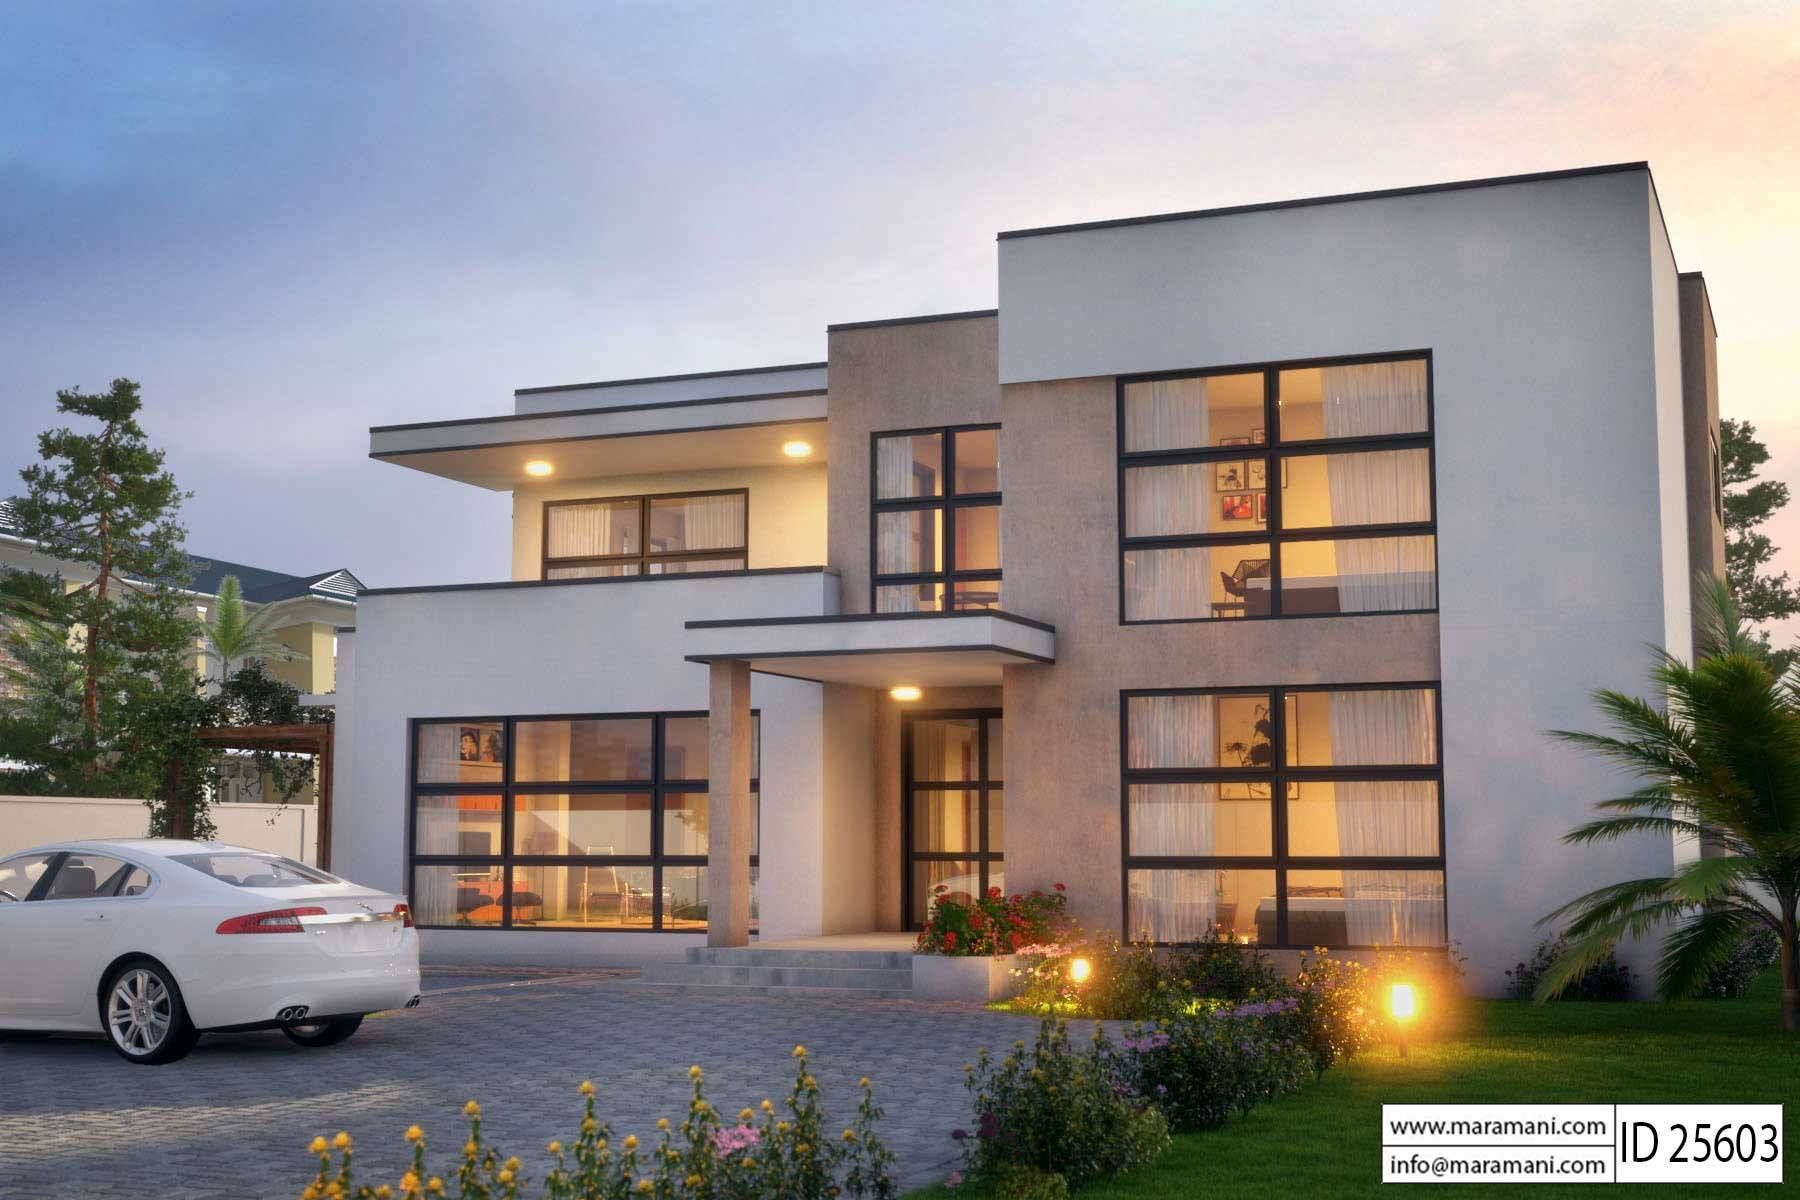 5 Bedroom House Designs Modern 5 Bedroom House Design  Id 25603  Floor Plansmaramani